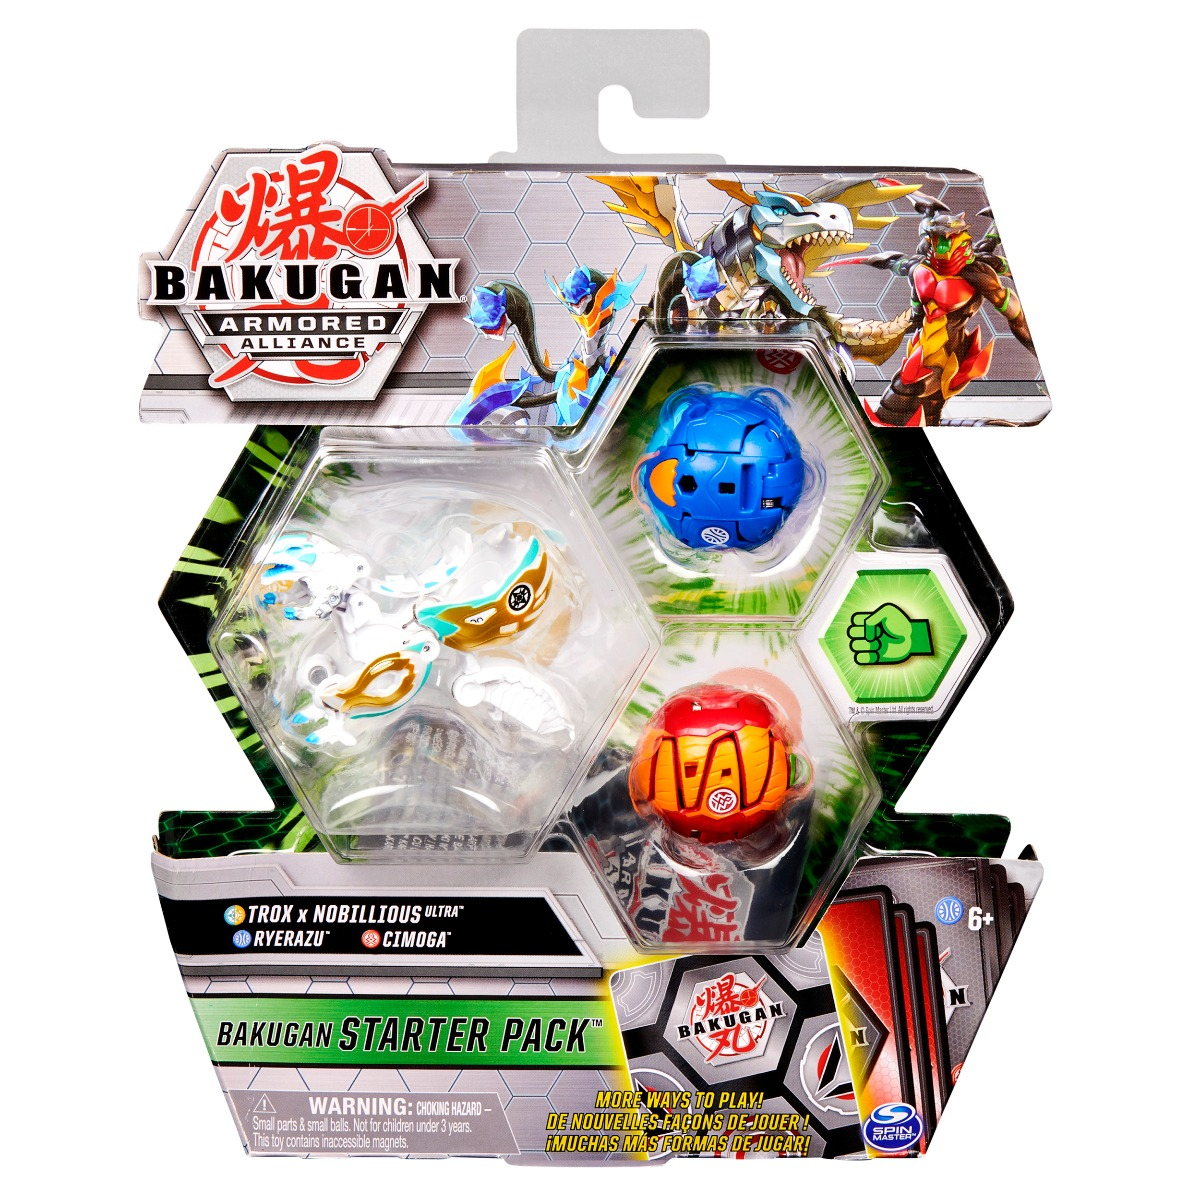 Set Bakugan Armored Alliance, Trox x Nobillious Ultra, Ryerazu, Cimoga 20125407